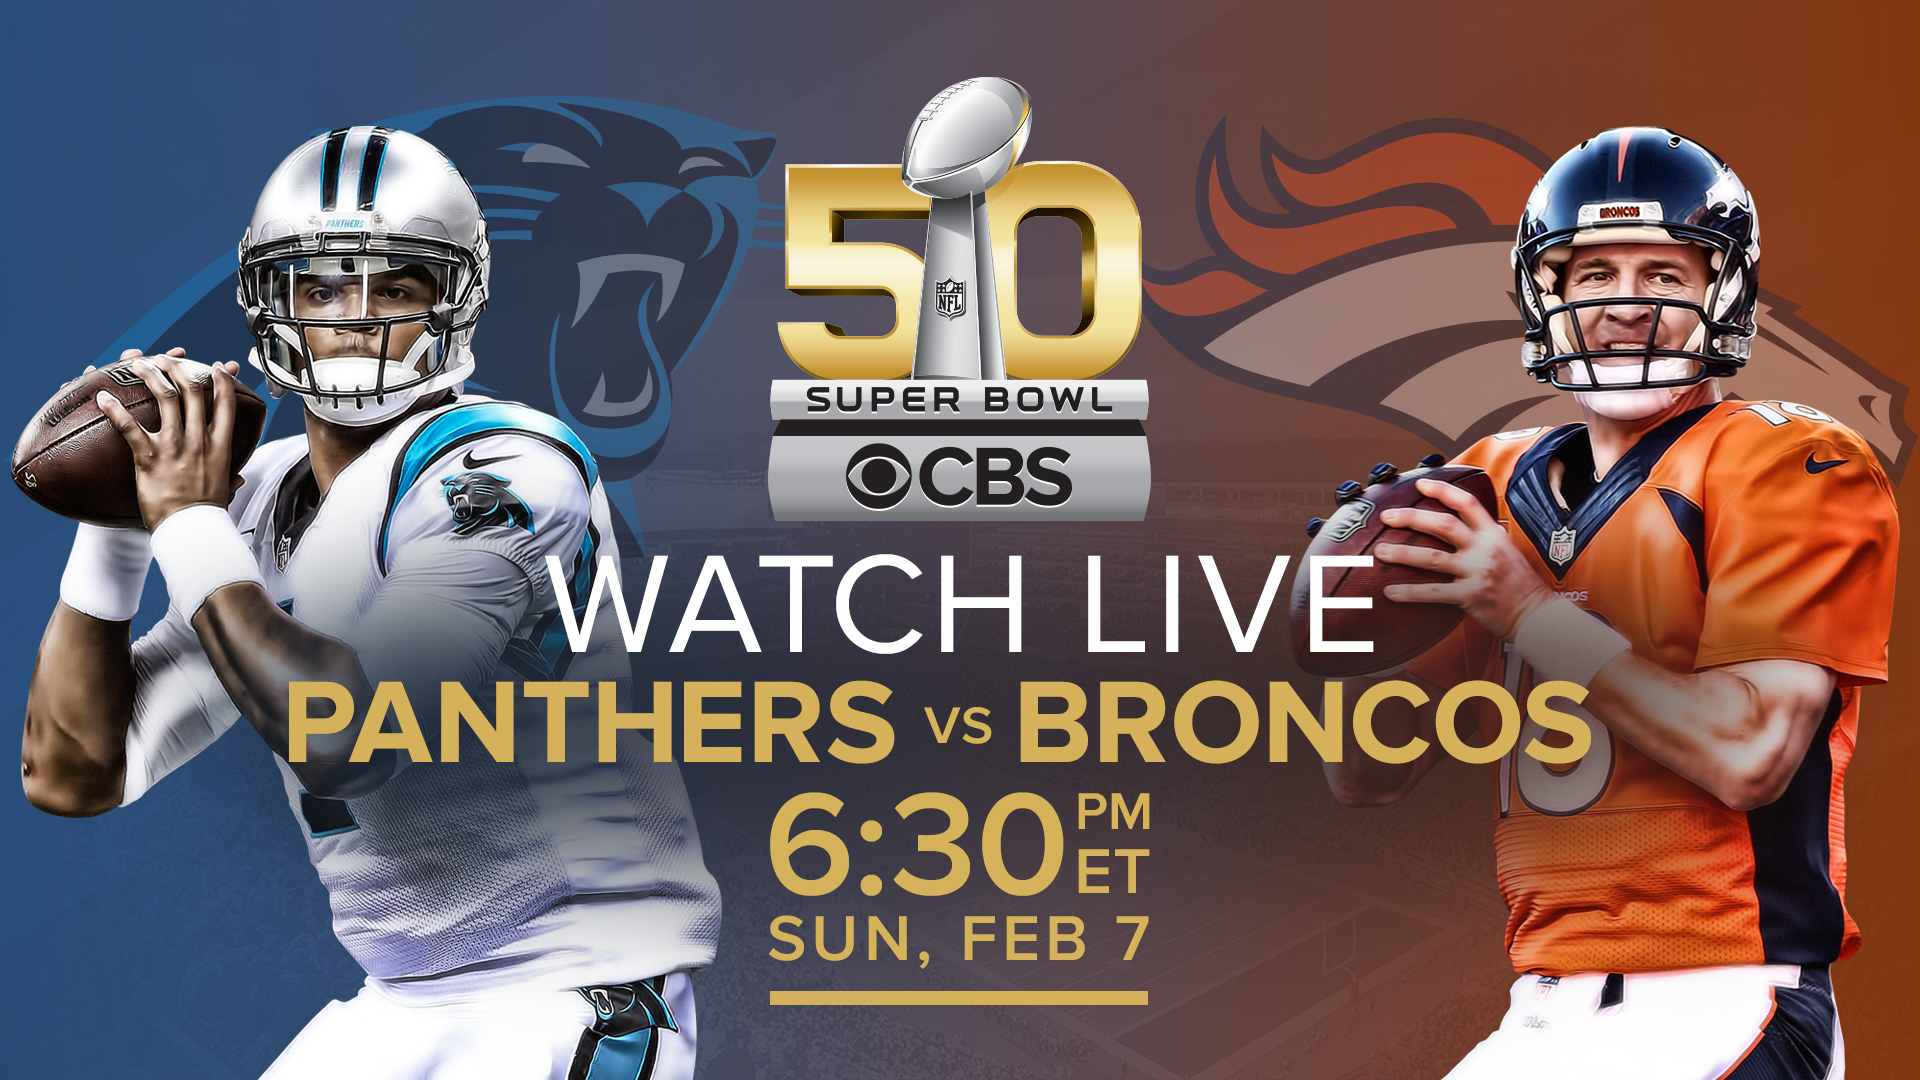 The Super Bowl will be broadcast live on TV in the UK on Sky Sports, with NFL pregame coverage beginning 10pm GMT, and BBC One will start its broadcast at pm, right before kickoff.